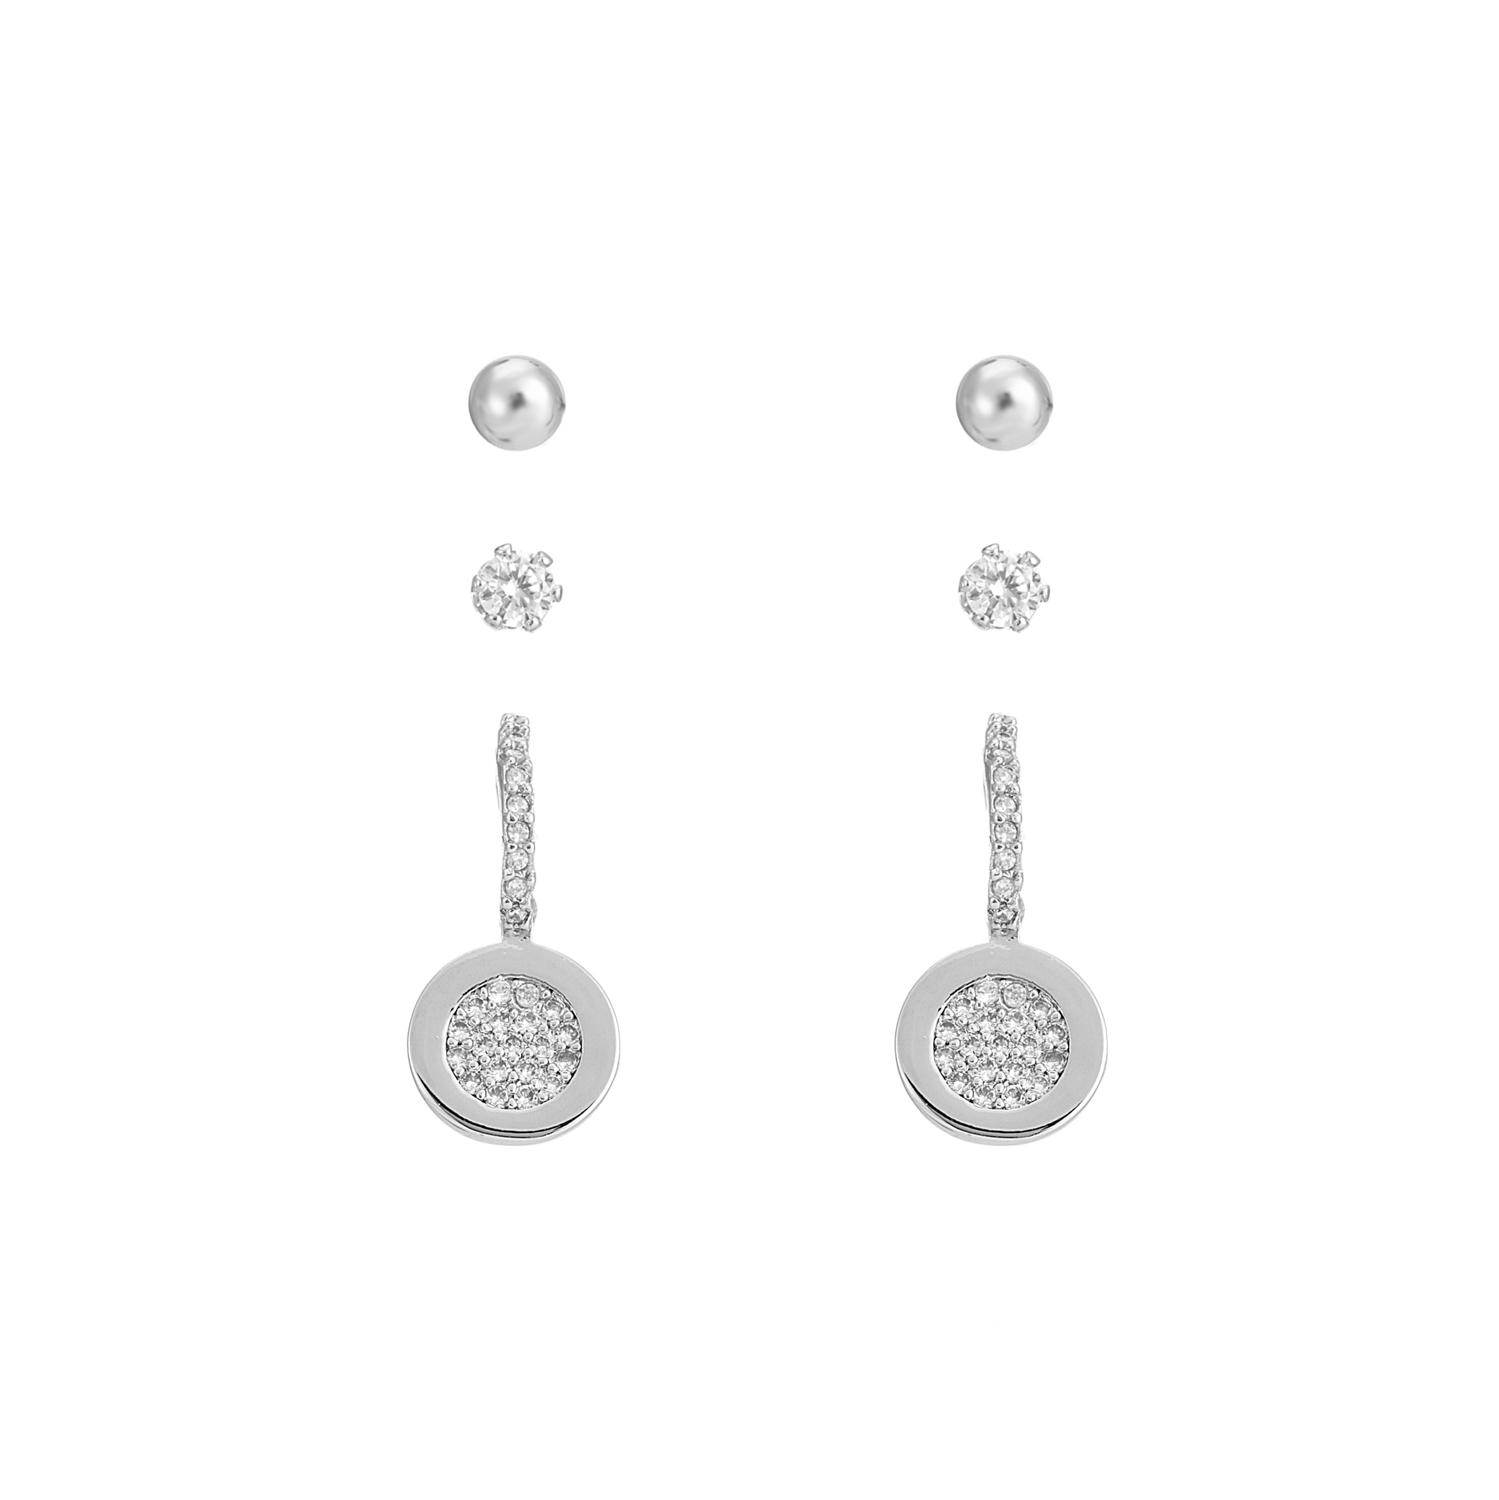 SILVER Classic Sparkle Earring Gift Set